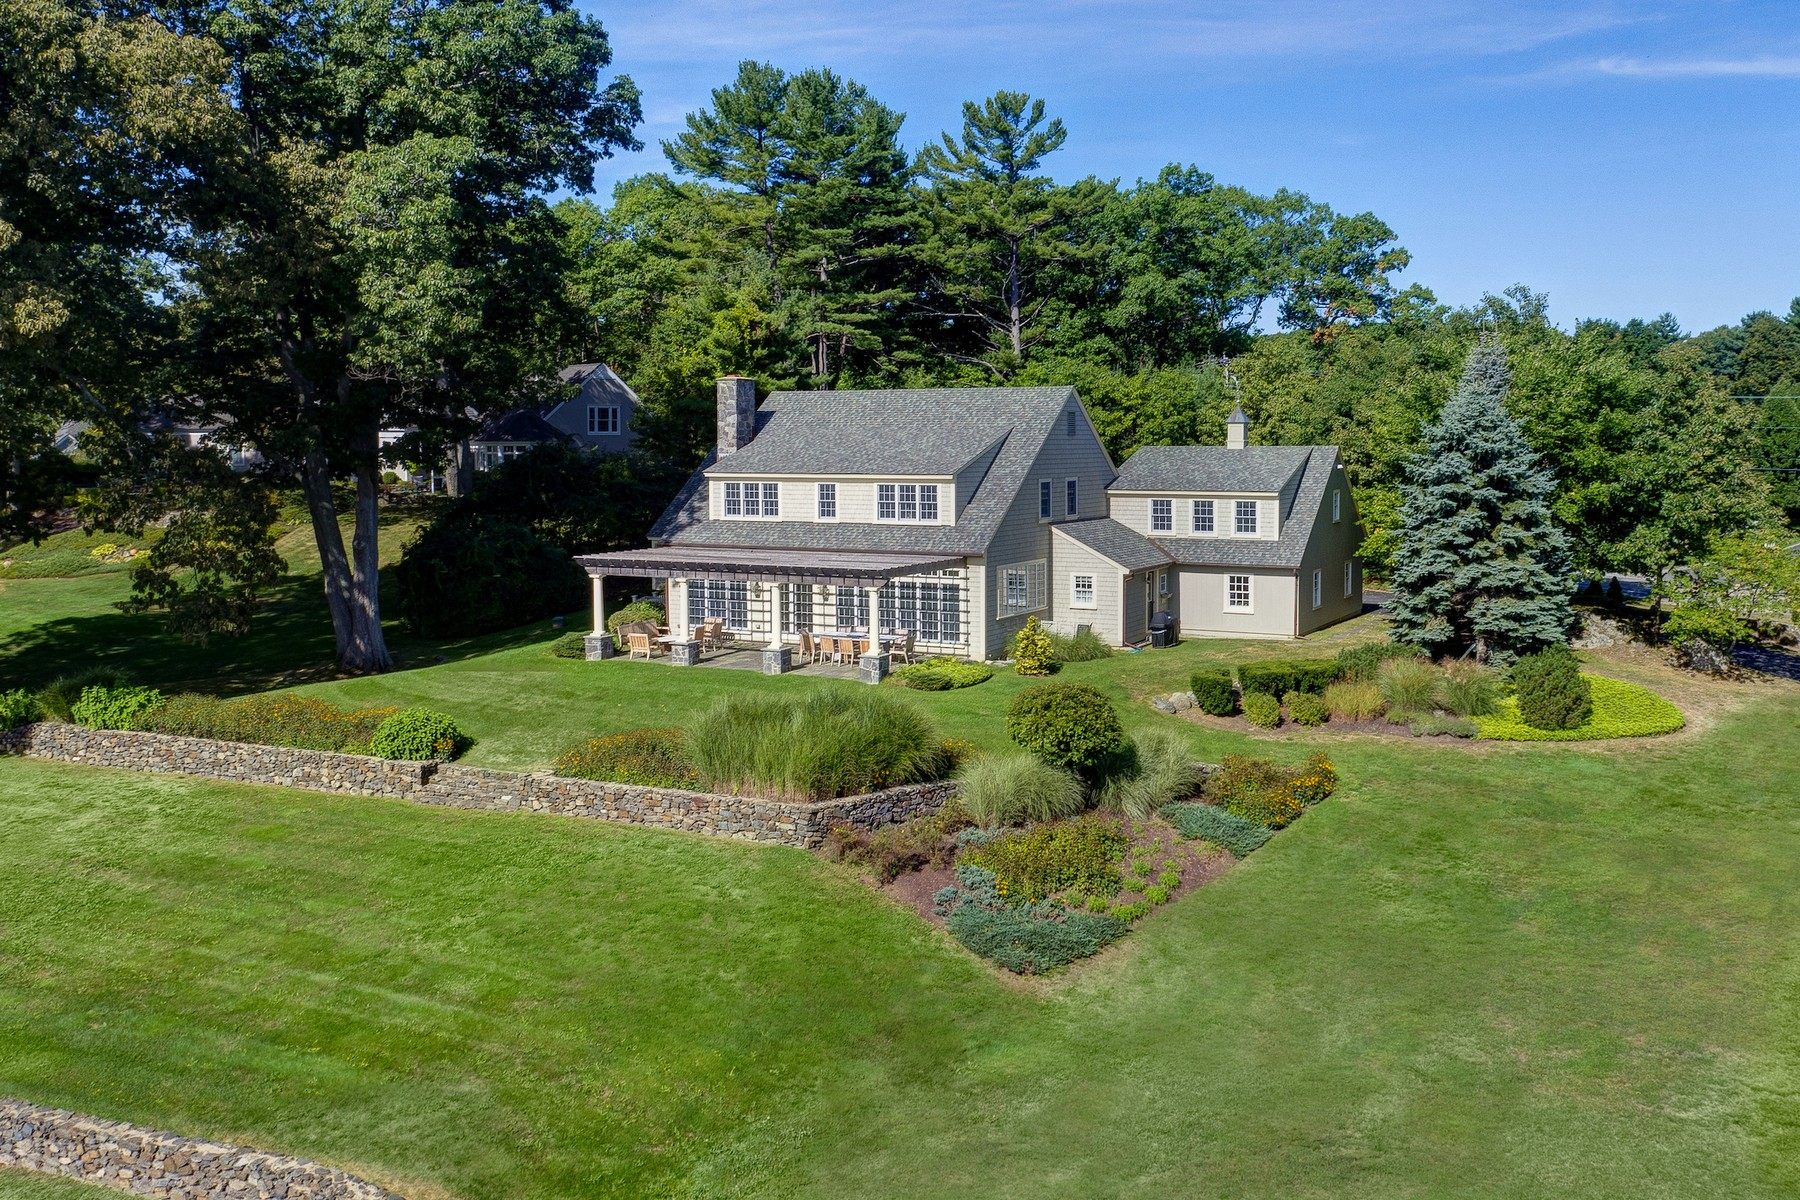 Single Family Home for Sale at Overlooking the 18th at Wentworth by the Sea CC 90 Wentworth Road Rye, New Hampshire 03870 United States